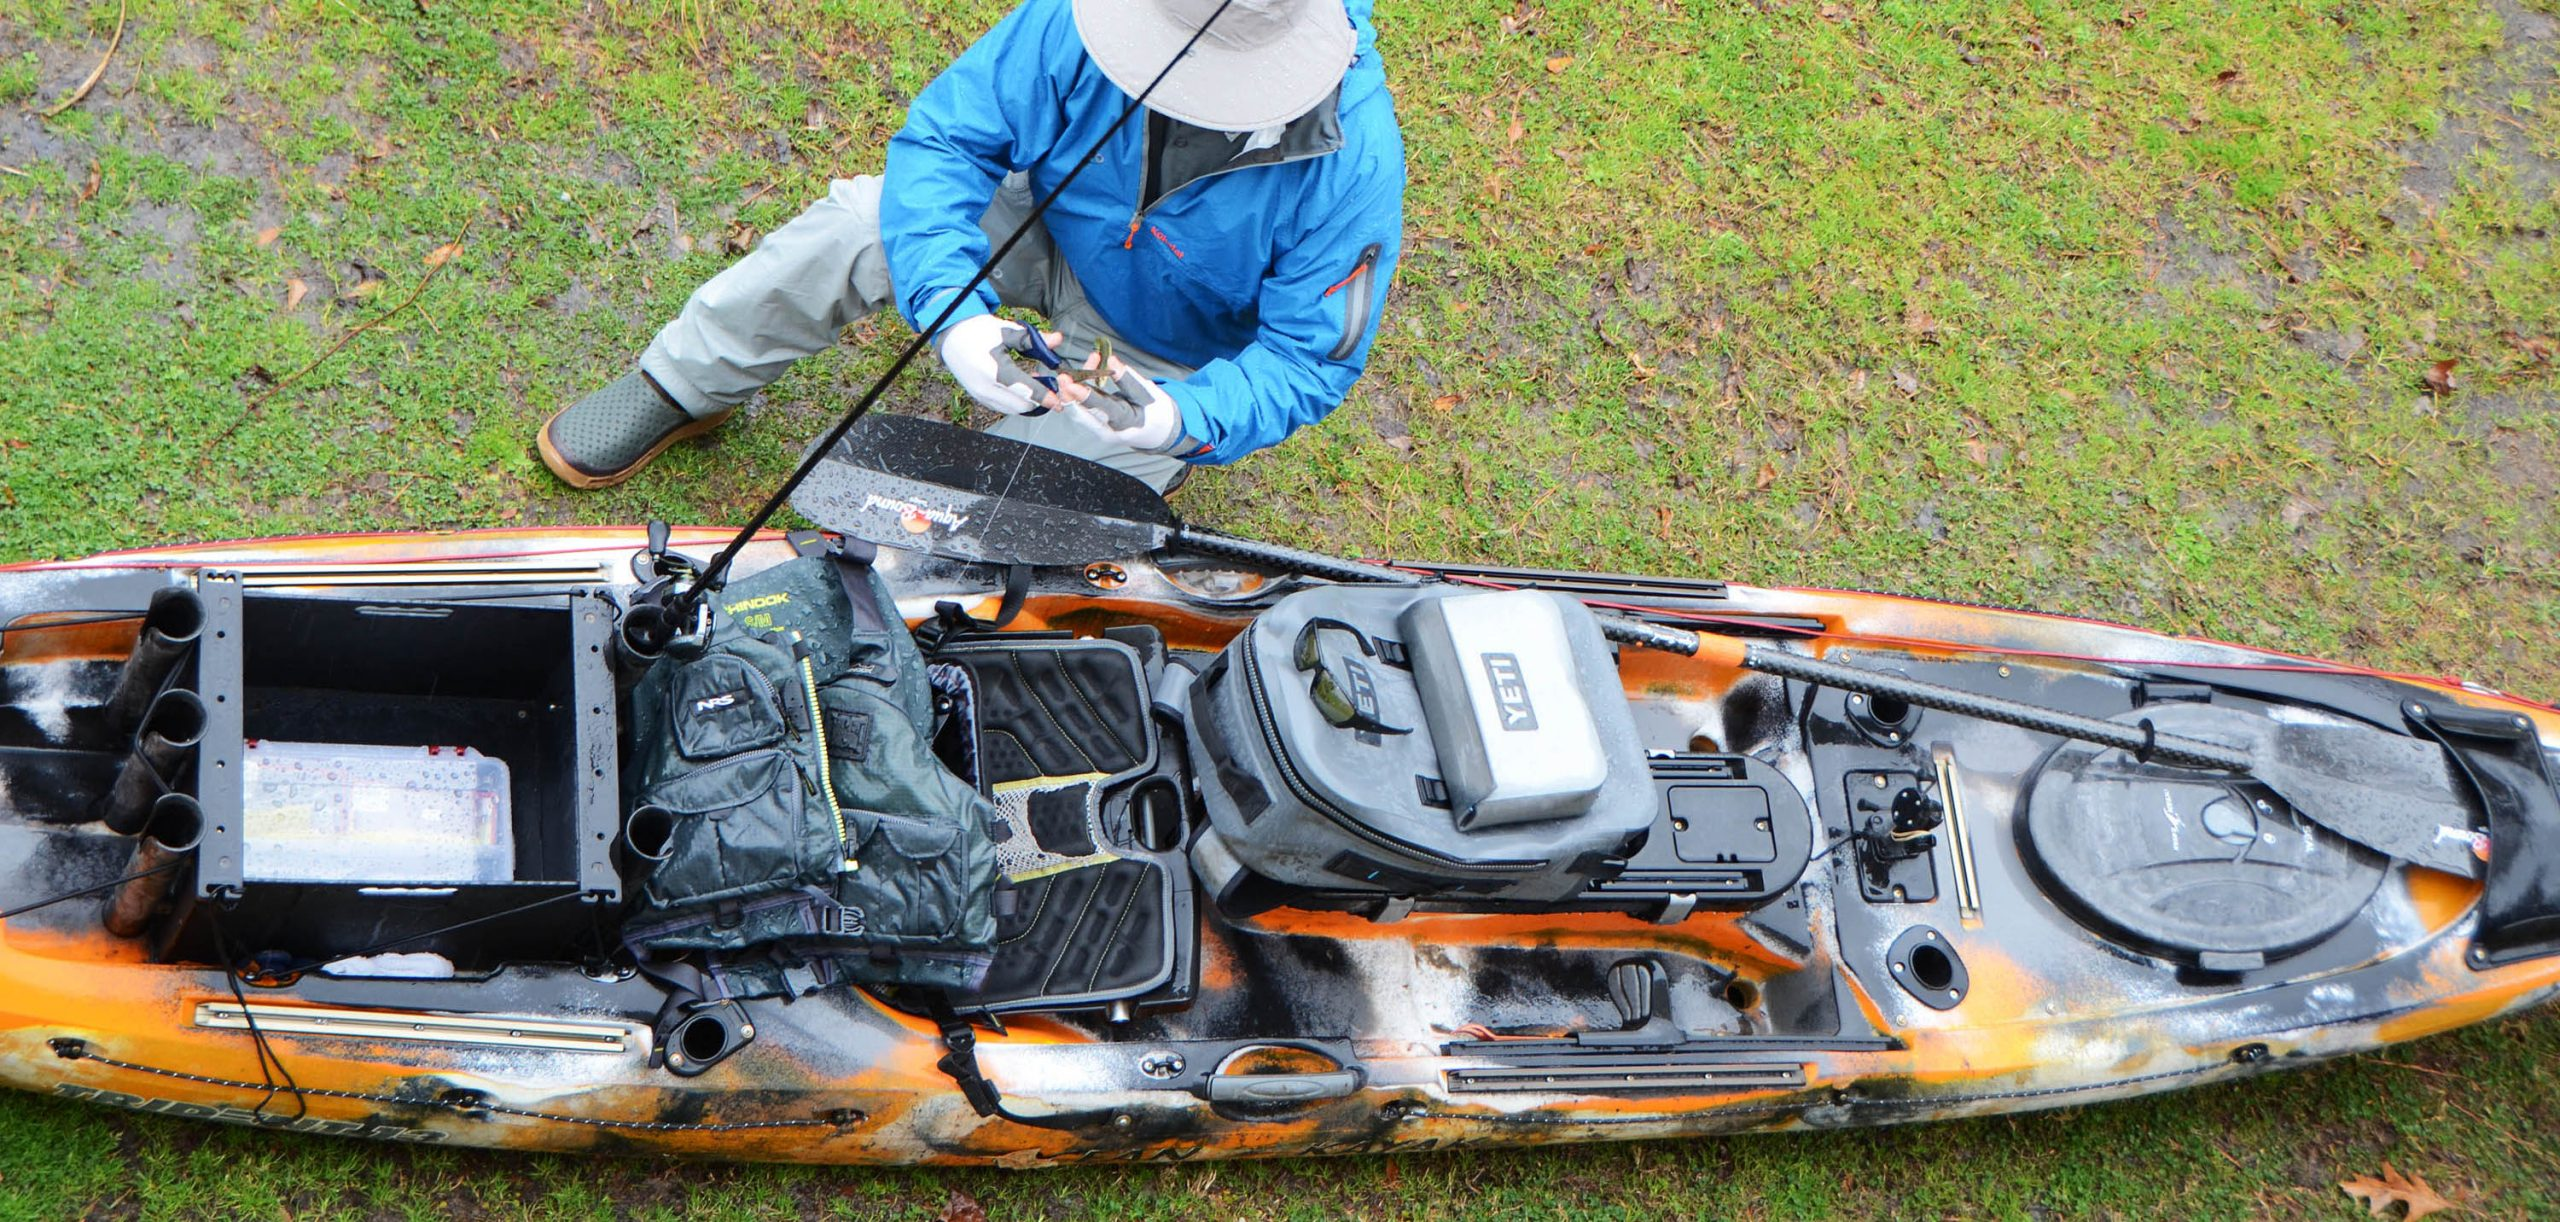 Overhead view of angler getting their fishing kayak ready on land.